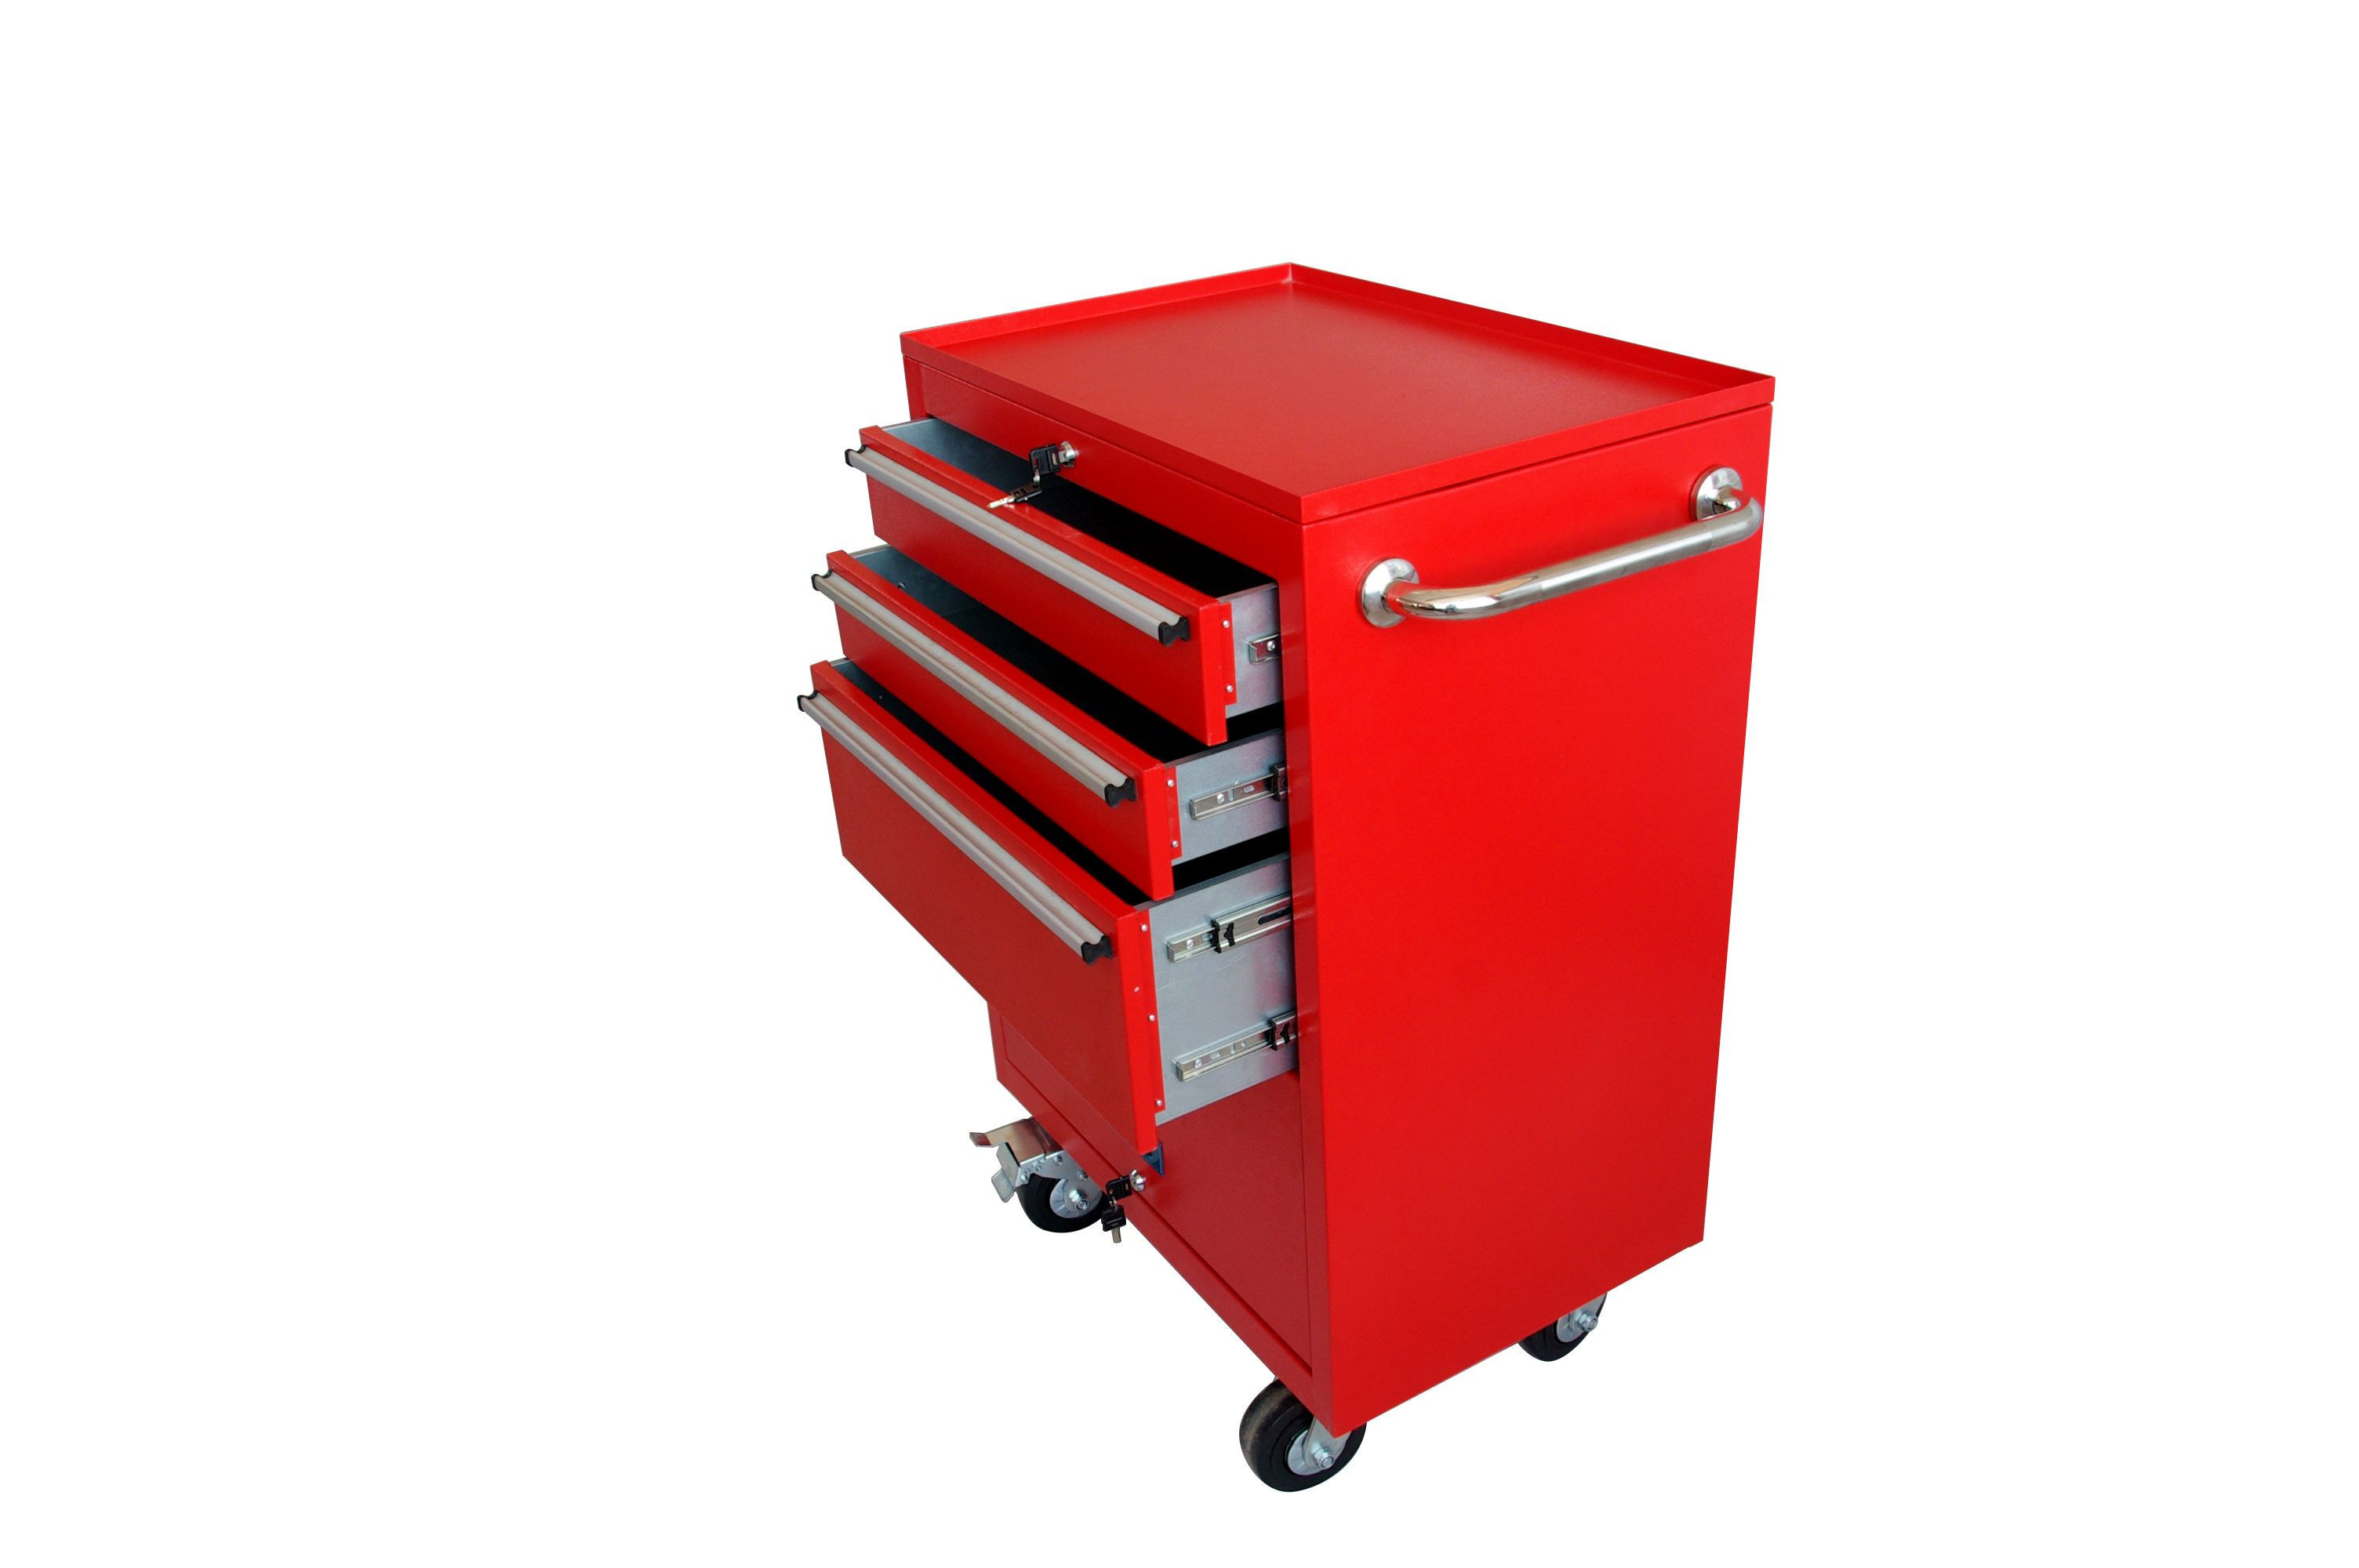 Professional good quality rolling tool box